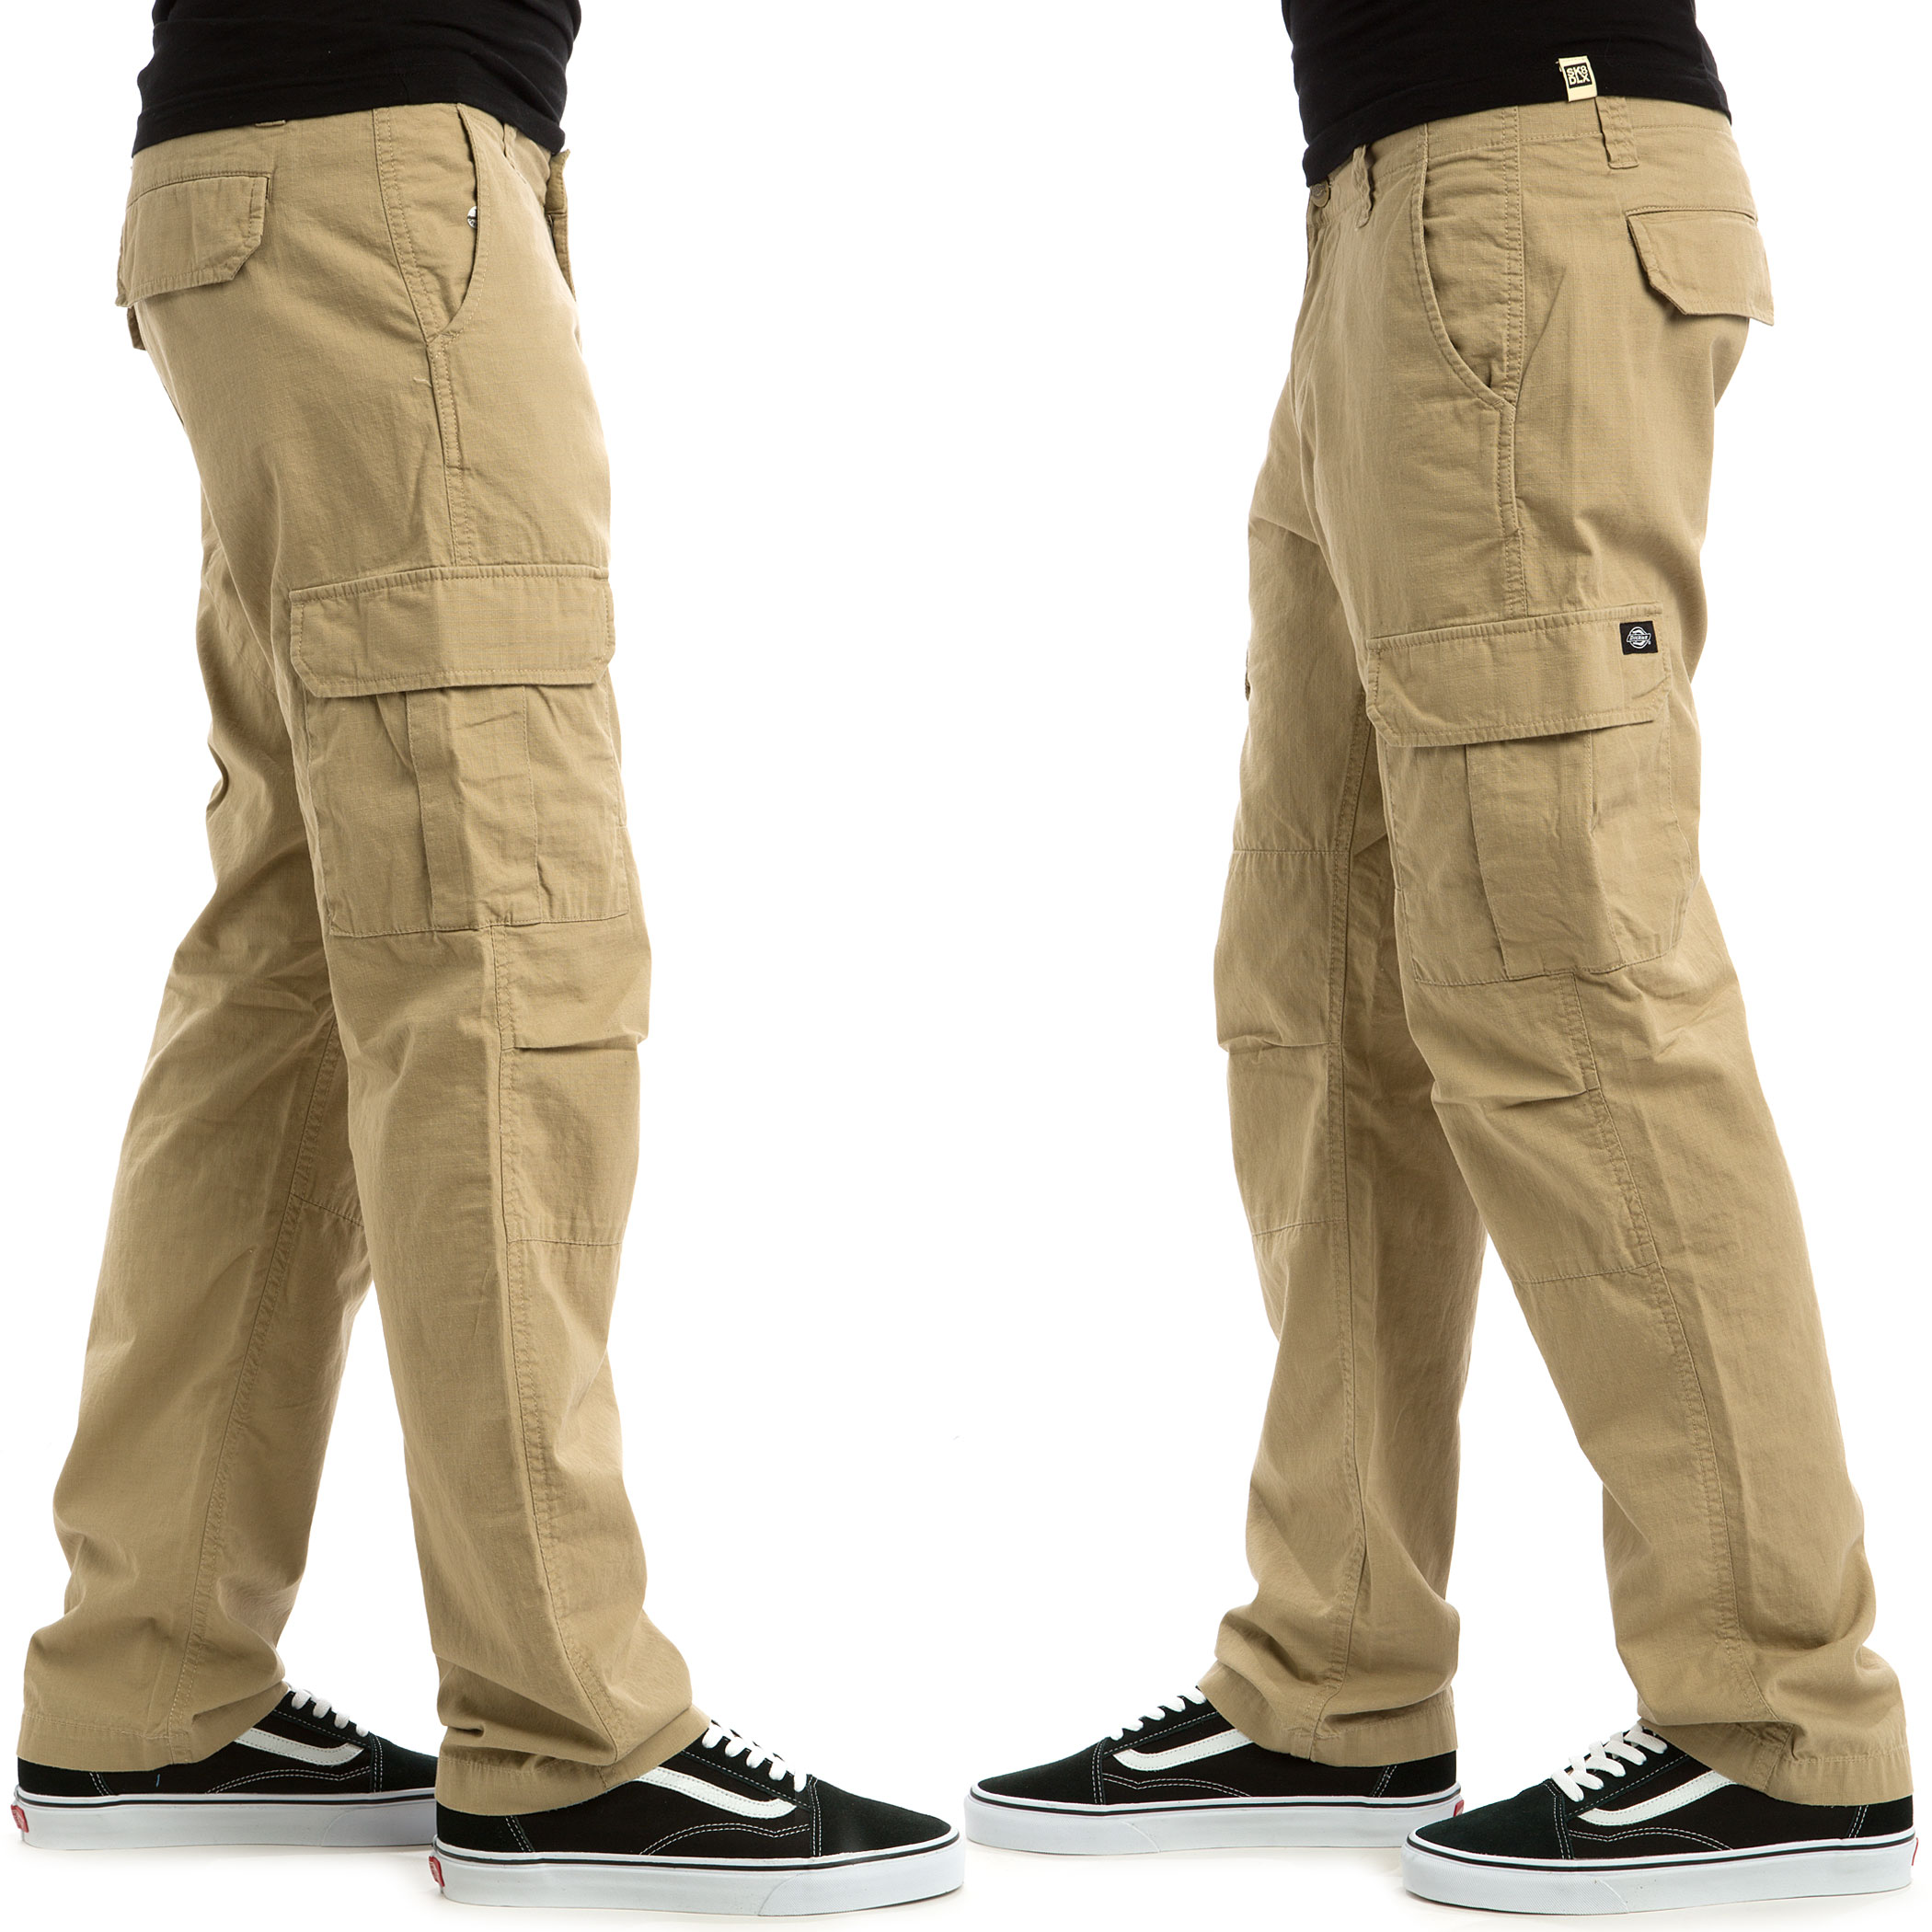 Unique Frontpage Clothing Pants Dickies Chinos Mens Fashion Khaki